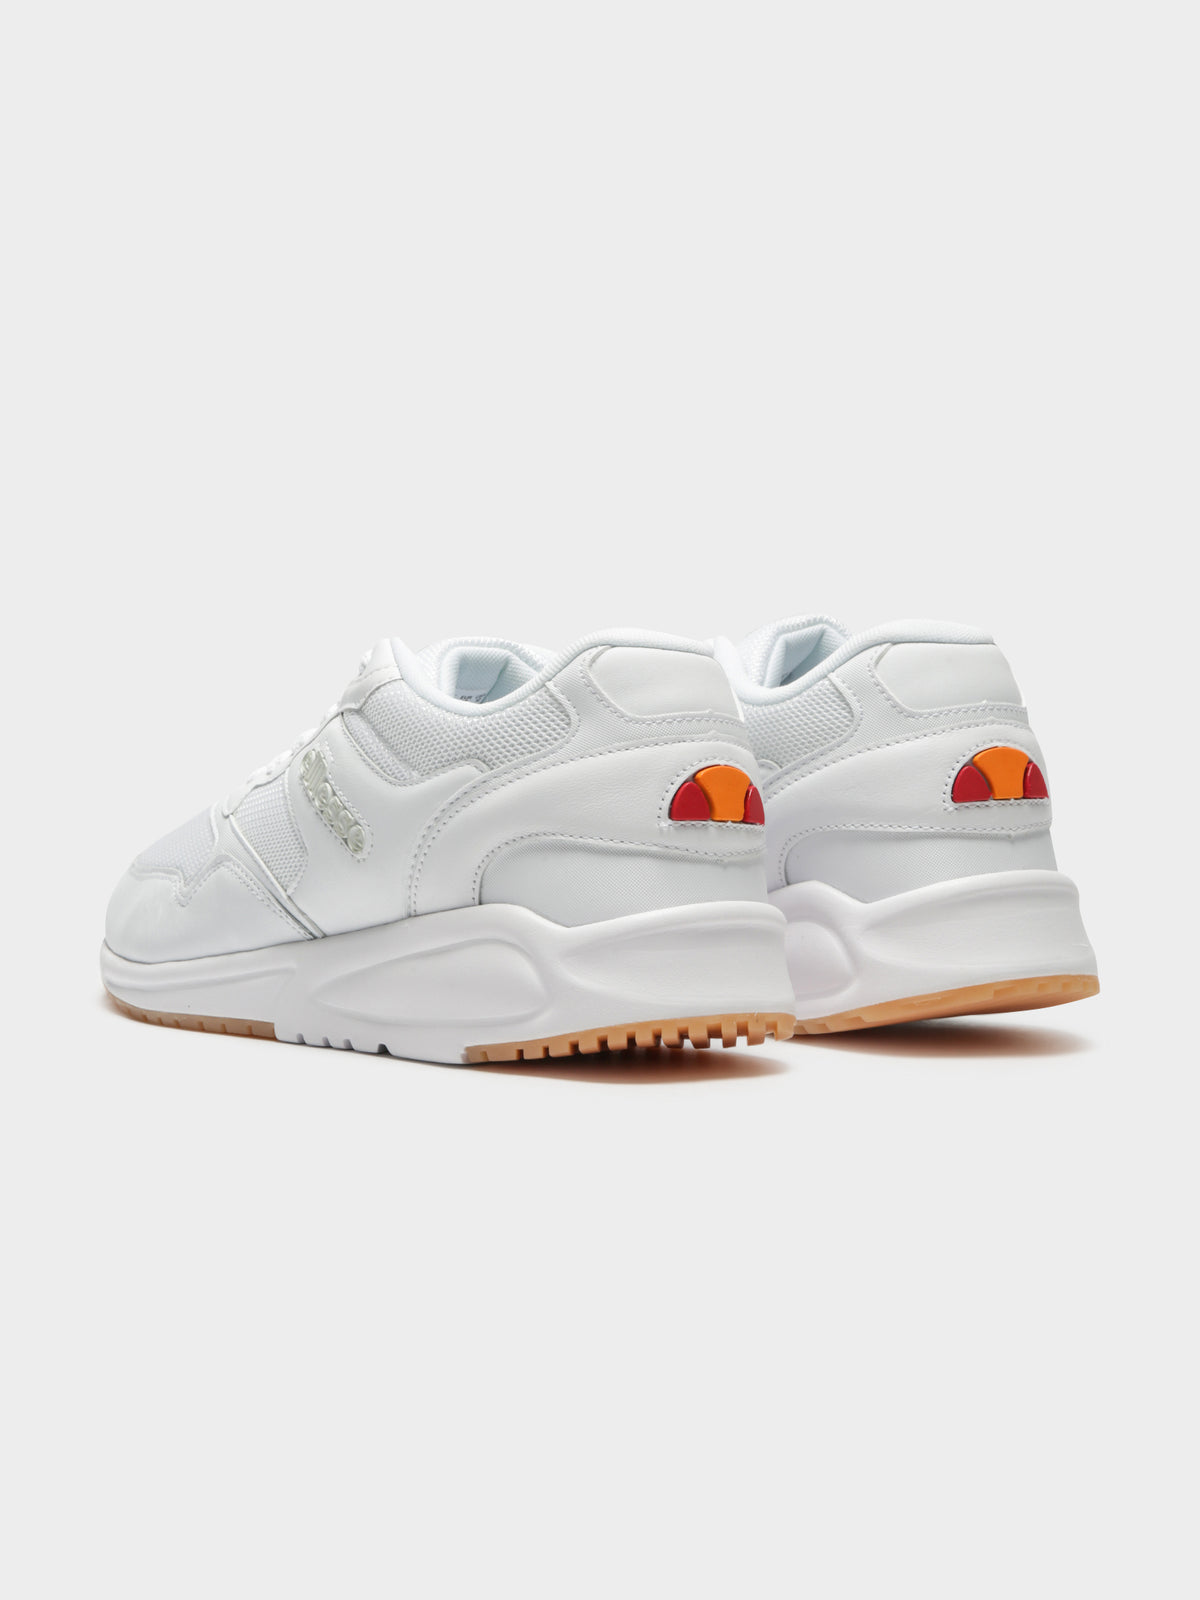 Womens NYC84 Sneakers in White